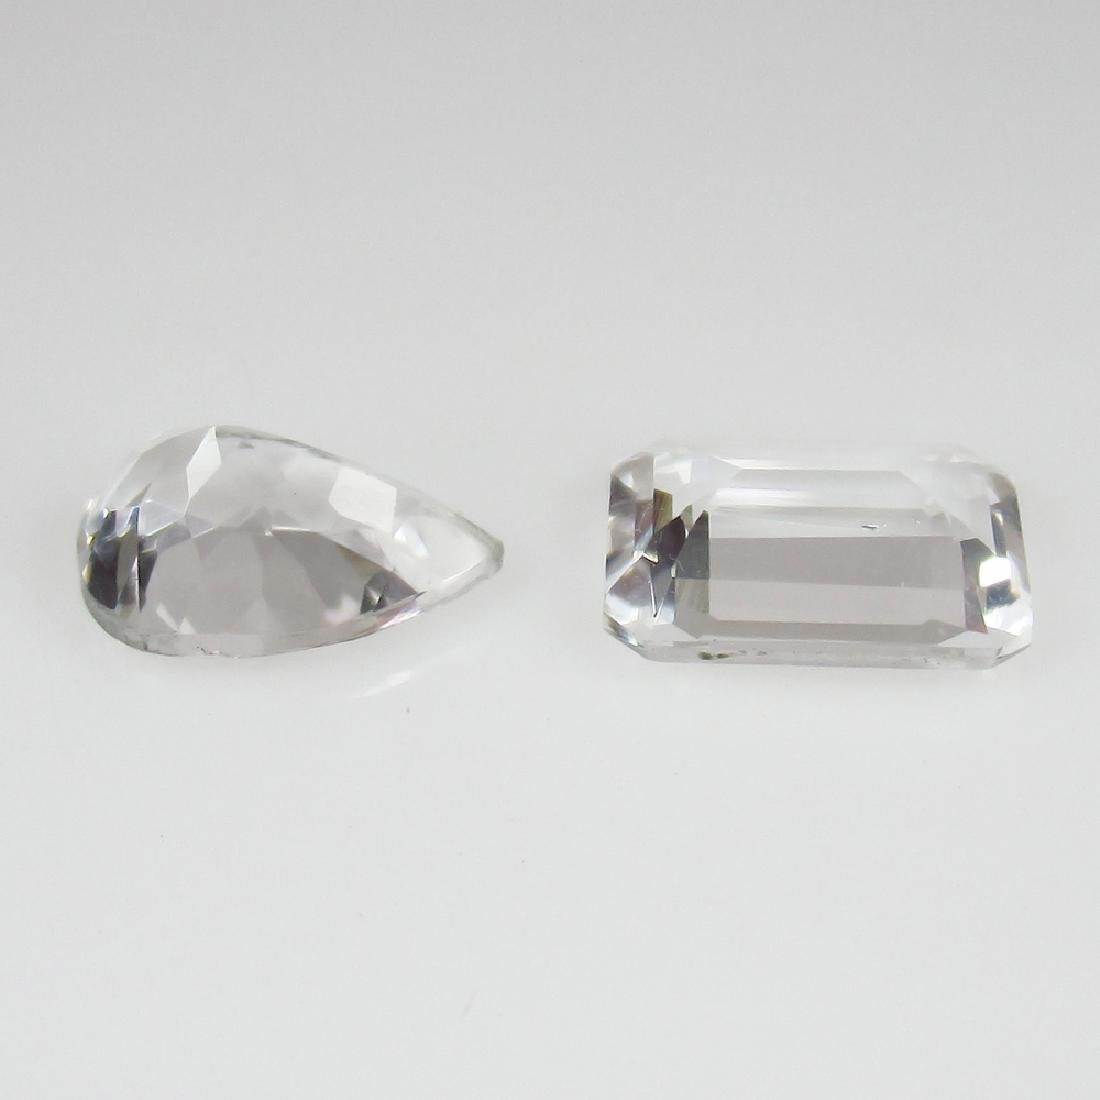 3.30 Ctw Natural Rock Crystal Top Class Luster Stones - 2